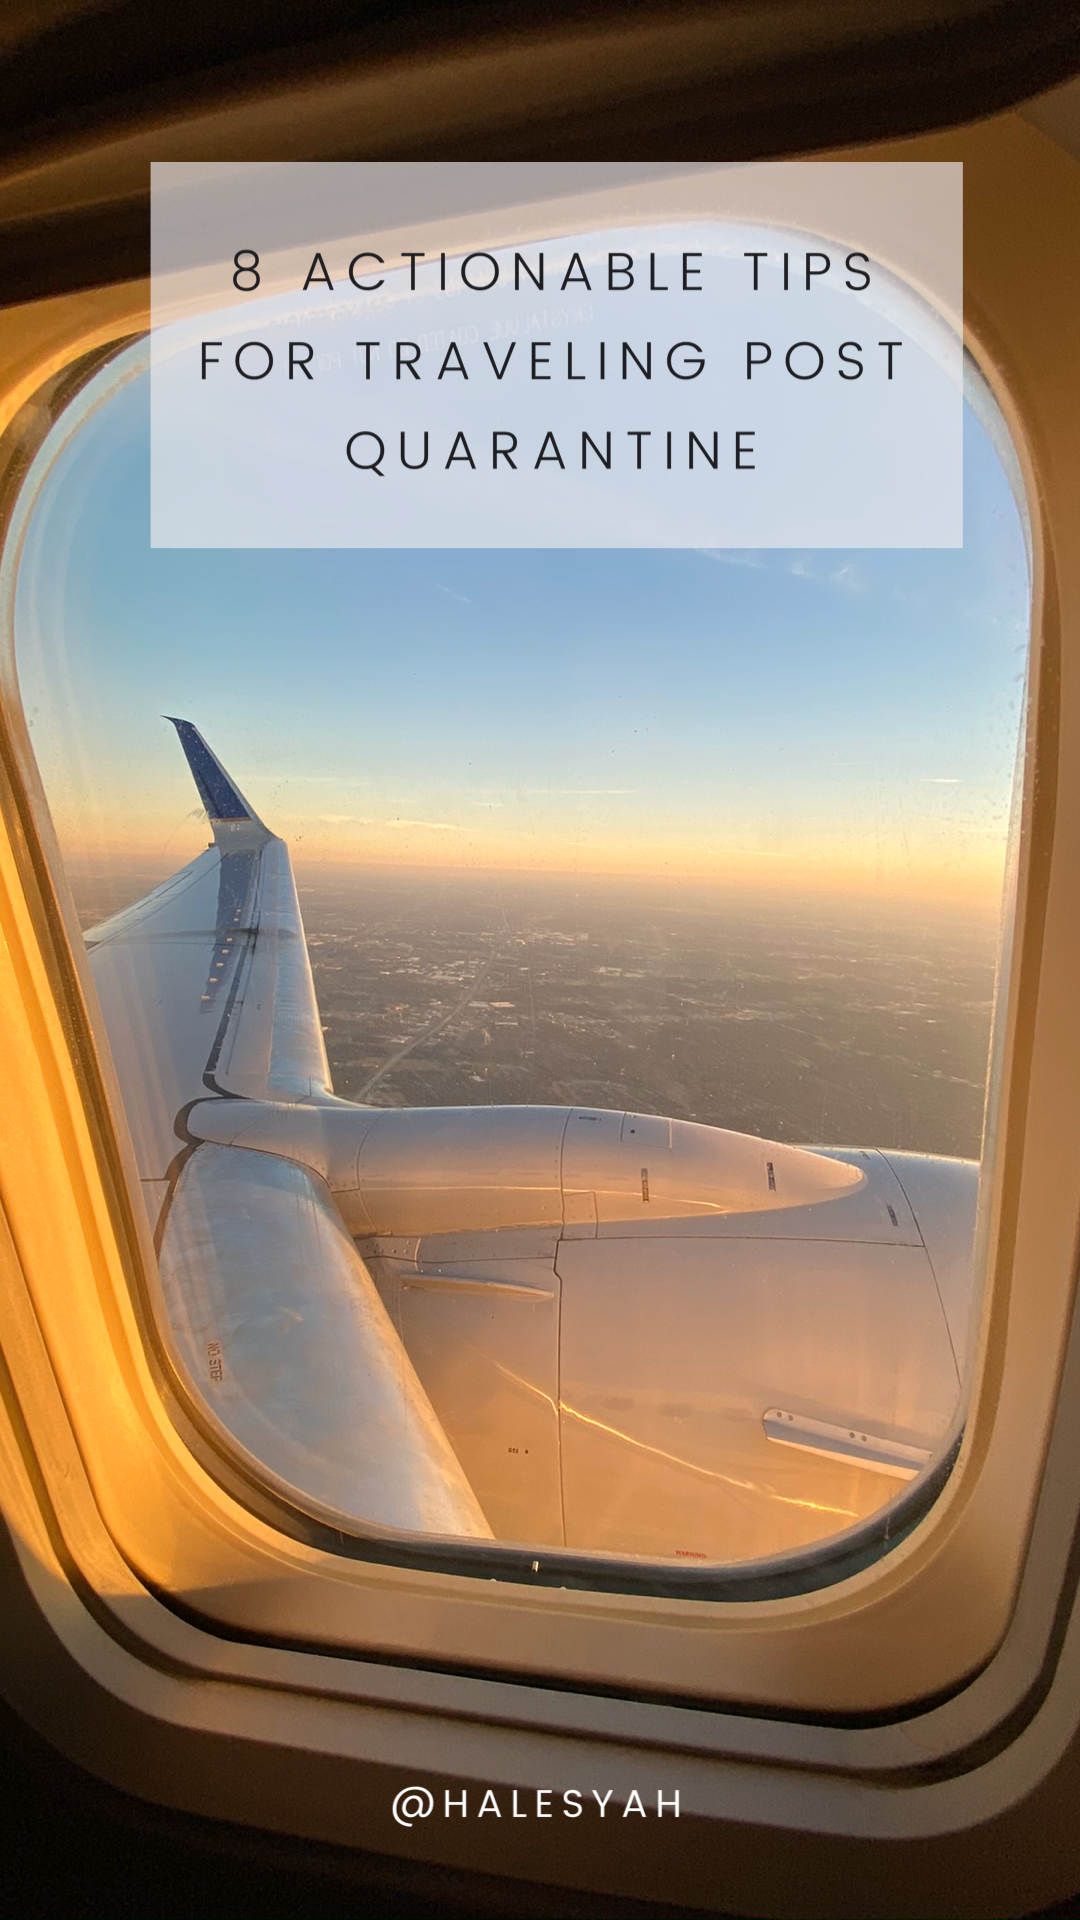 8 Actionable Tips for Traveling Post Quarantine